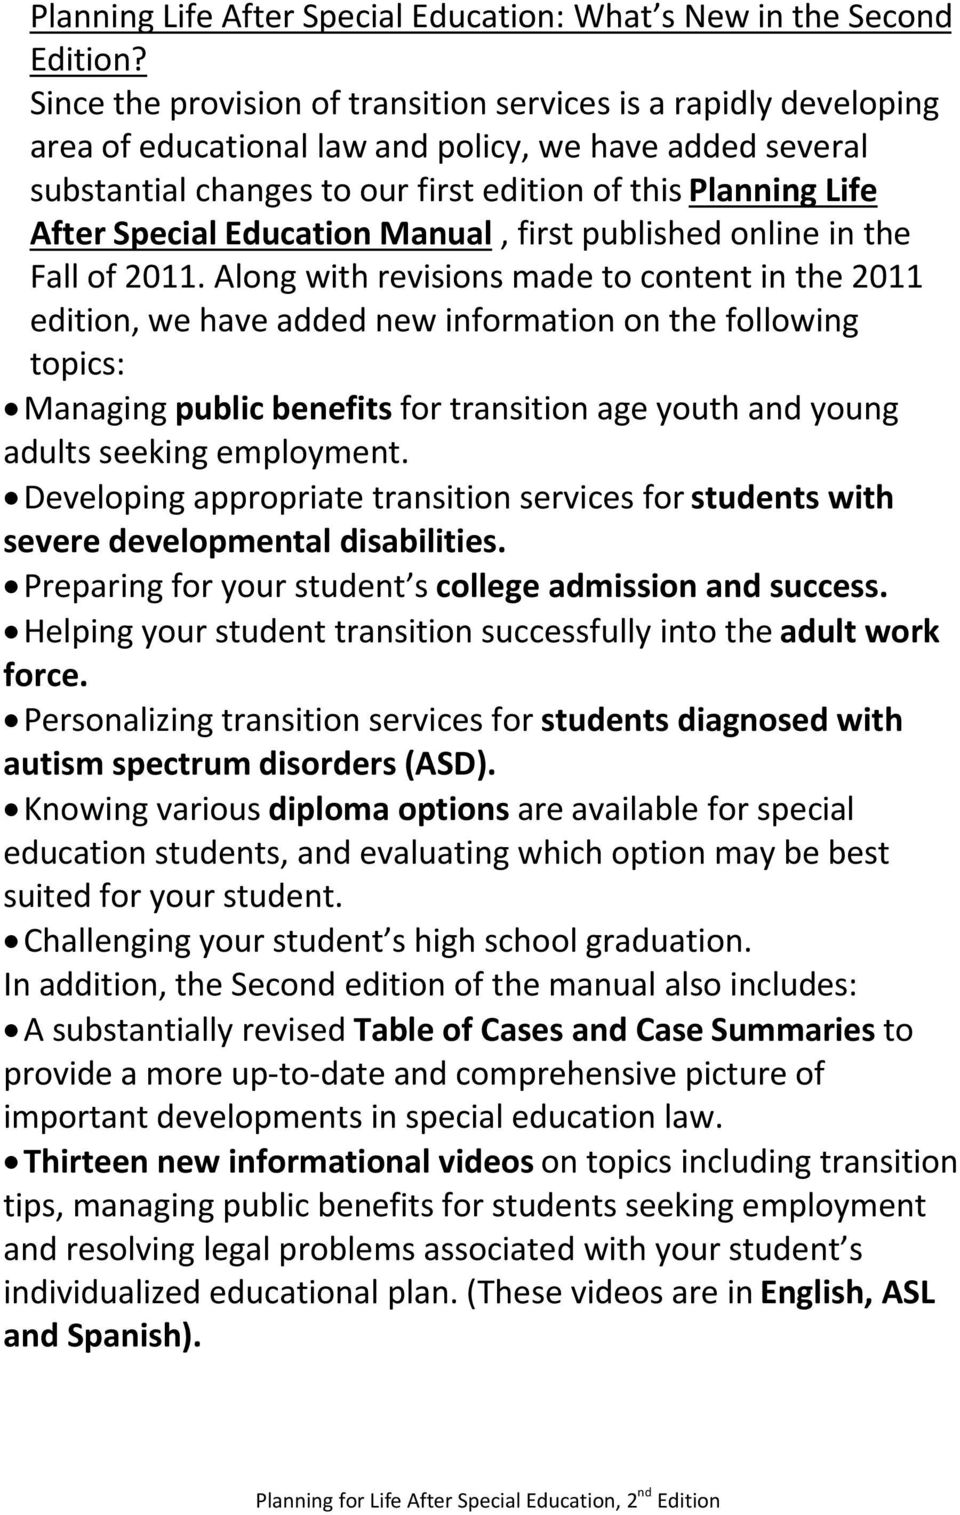 Special Education Manual, first published online in the Fall of 2011.